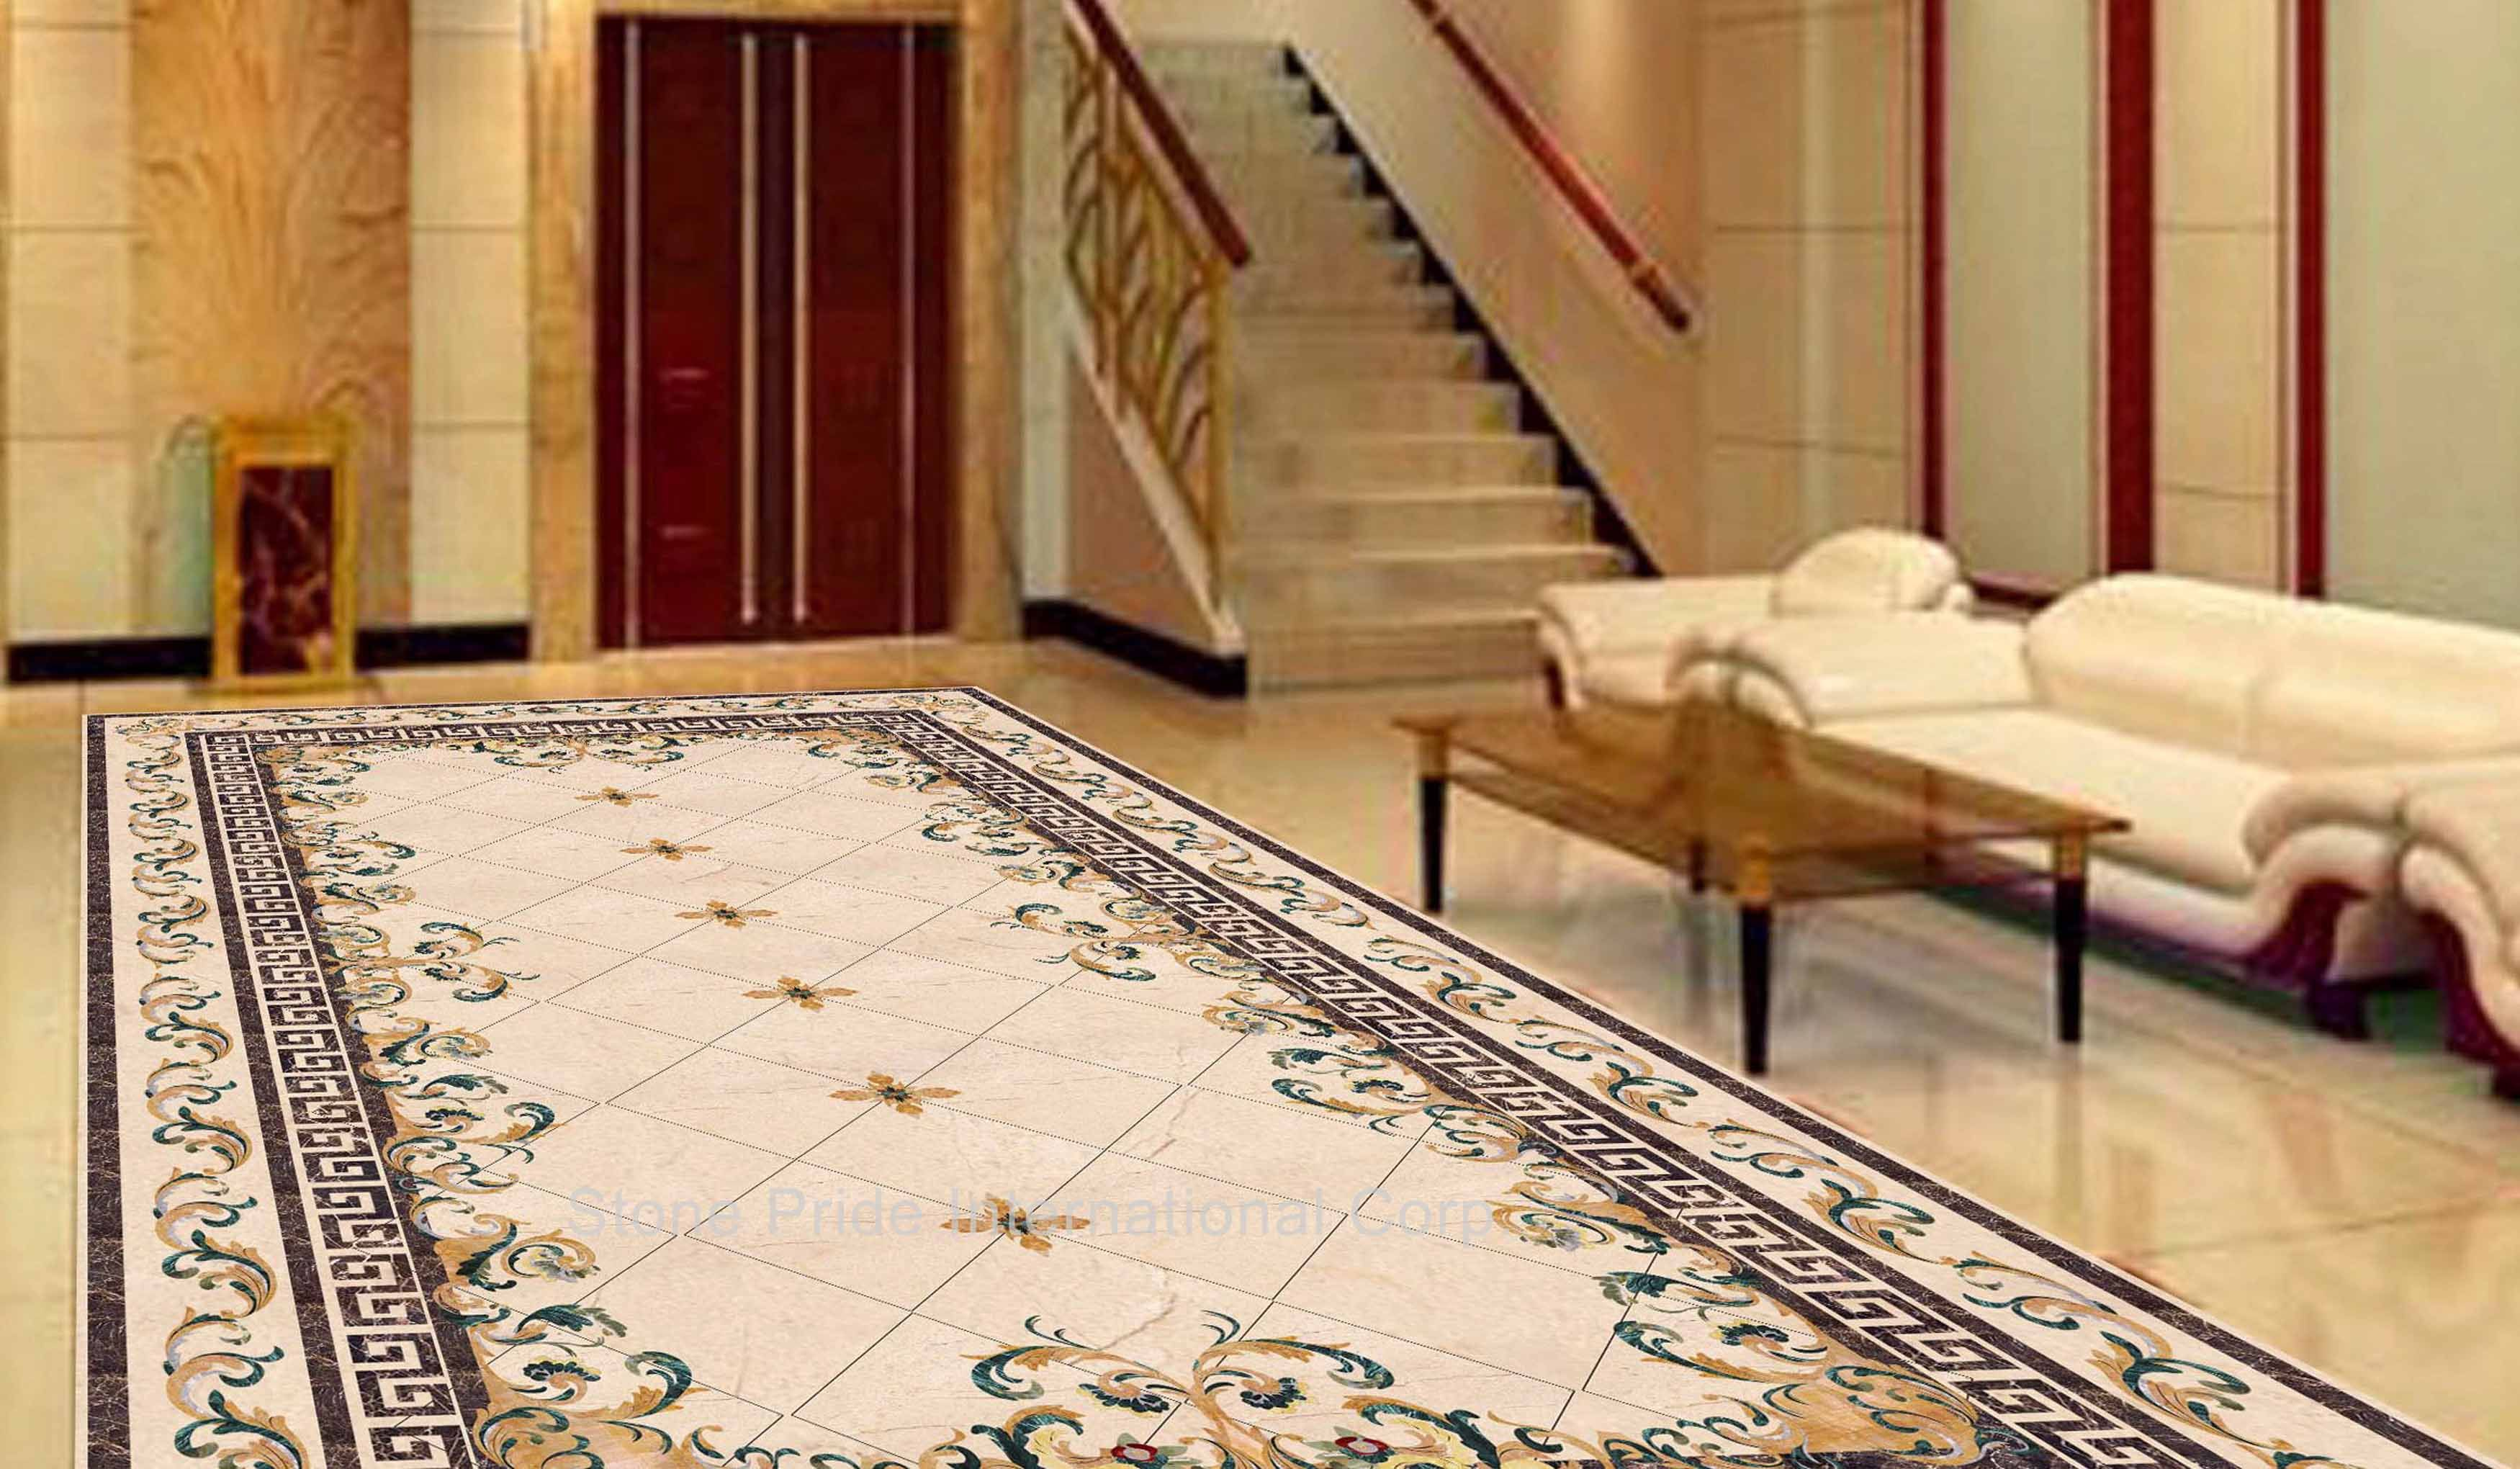 Floor design floor design floor design ideas floor Different design and colors of tiles